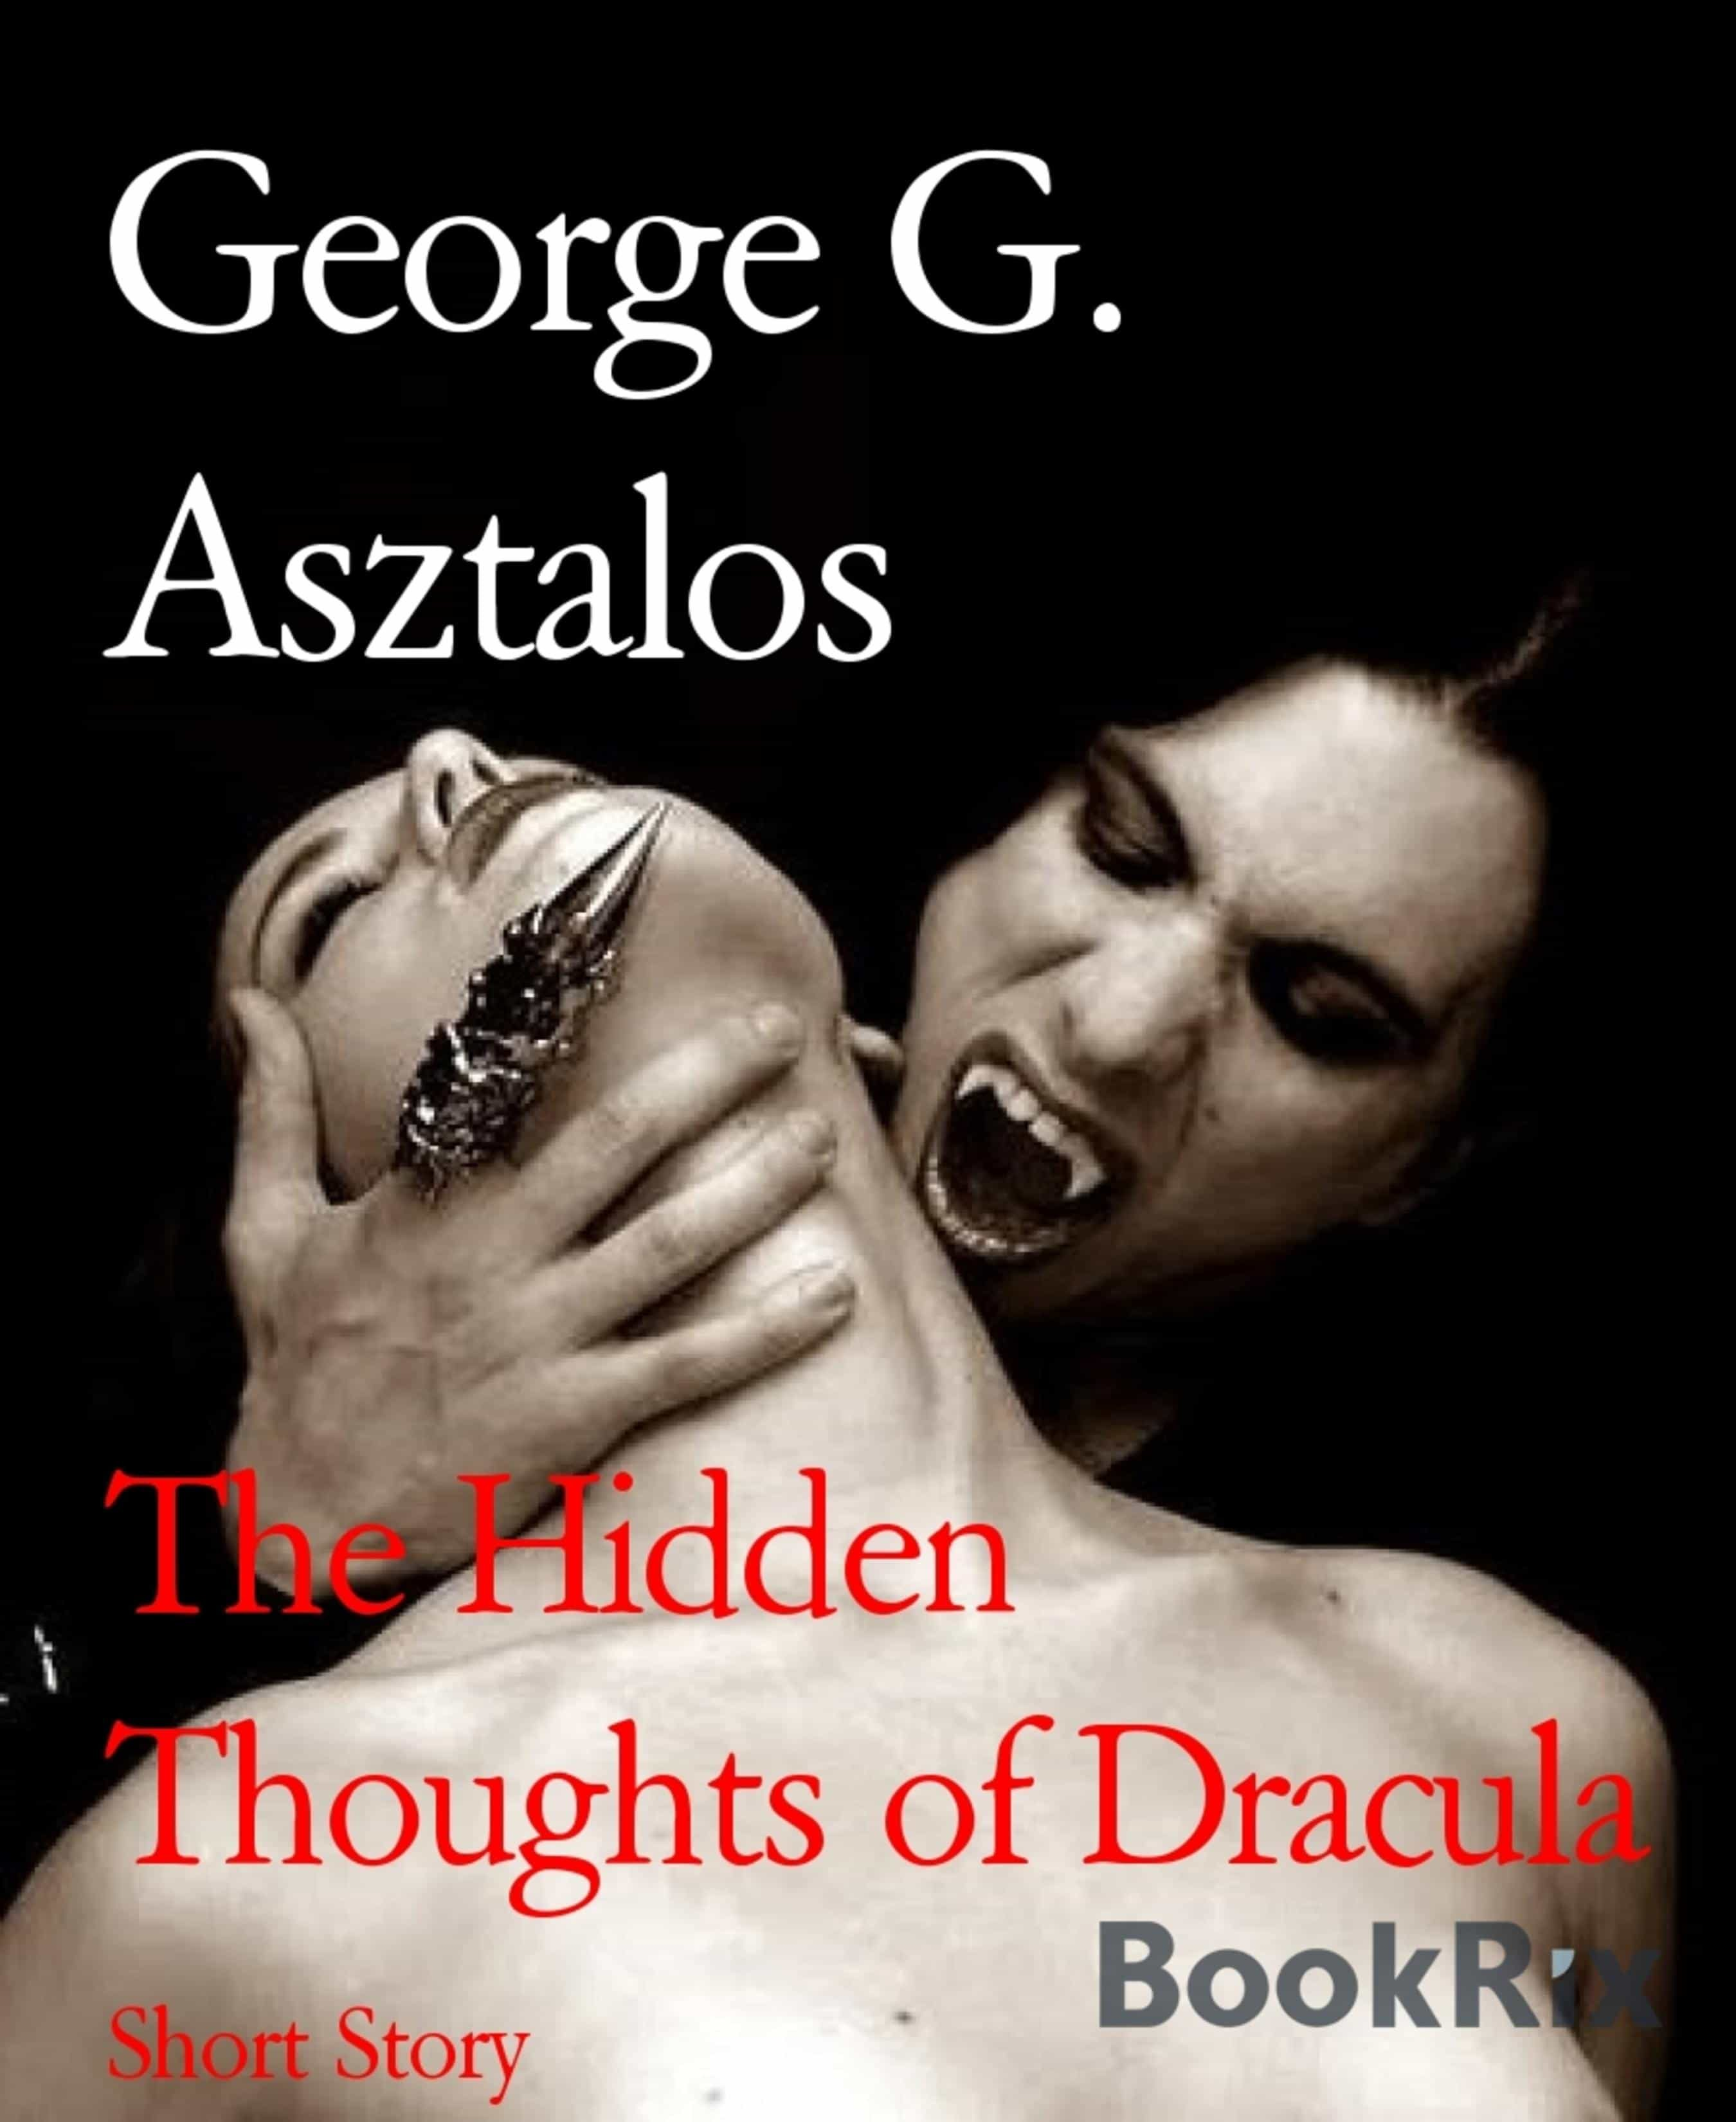 THE HIDDEN THOUGHTS OF DRACULA